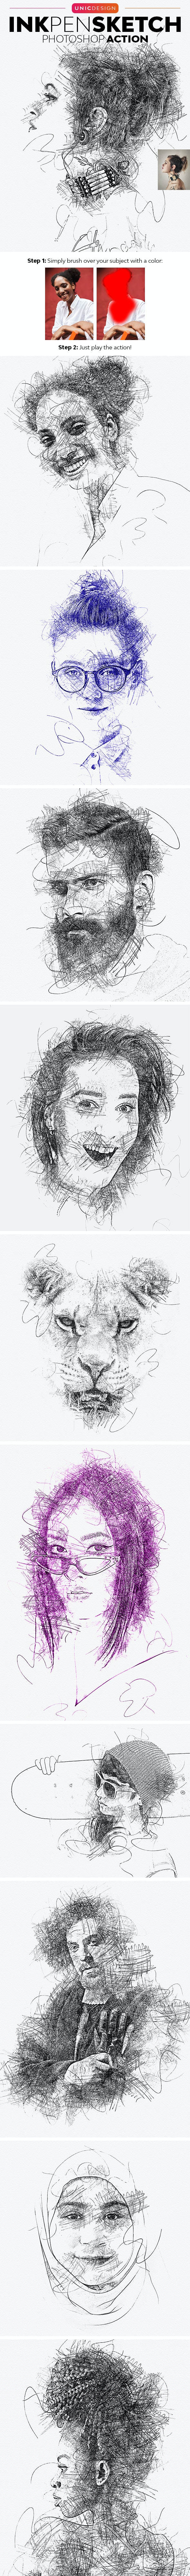 Ink Pen Sketch Photoshop Action - Photo Effects Actions